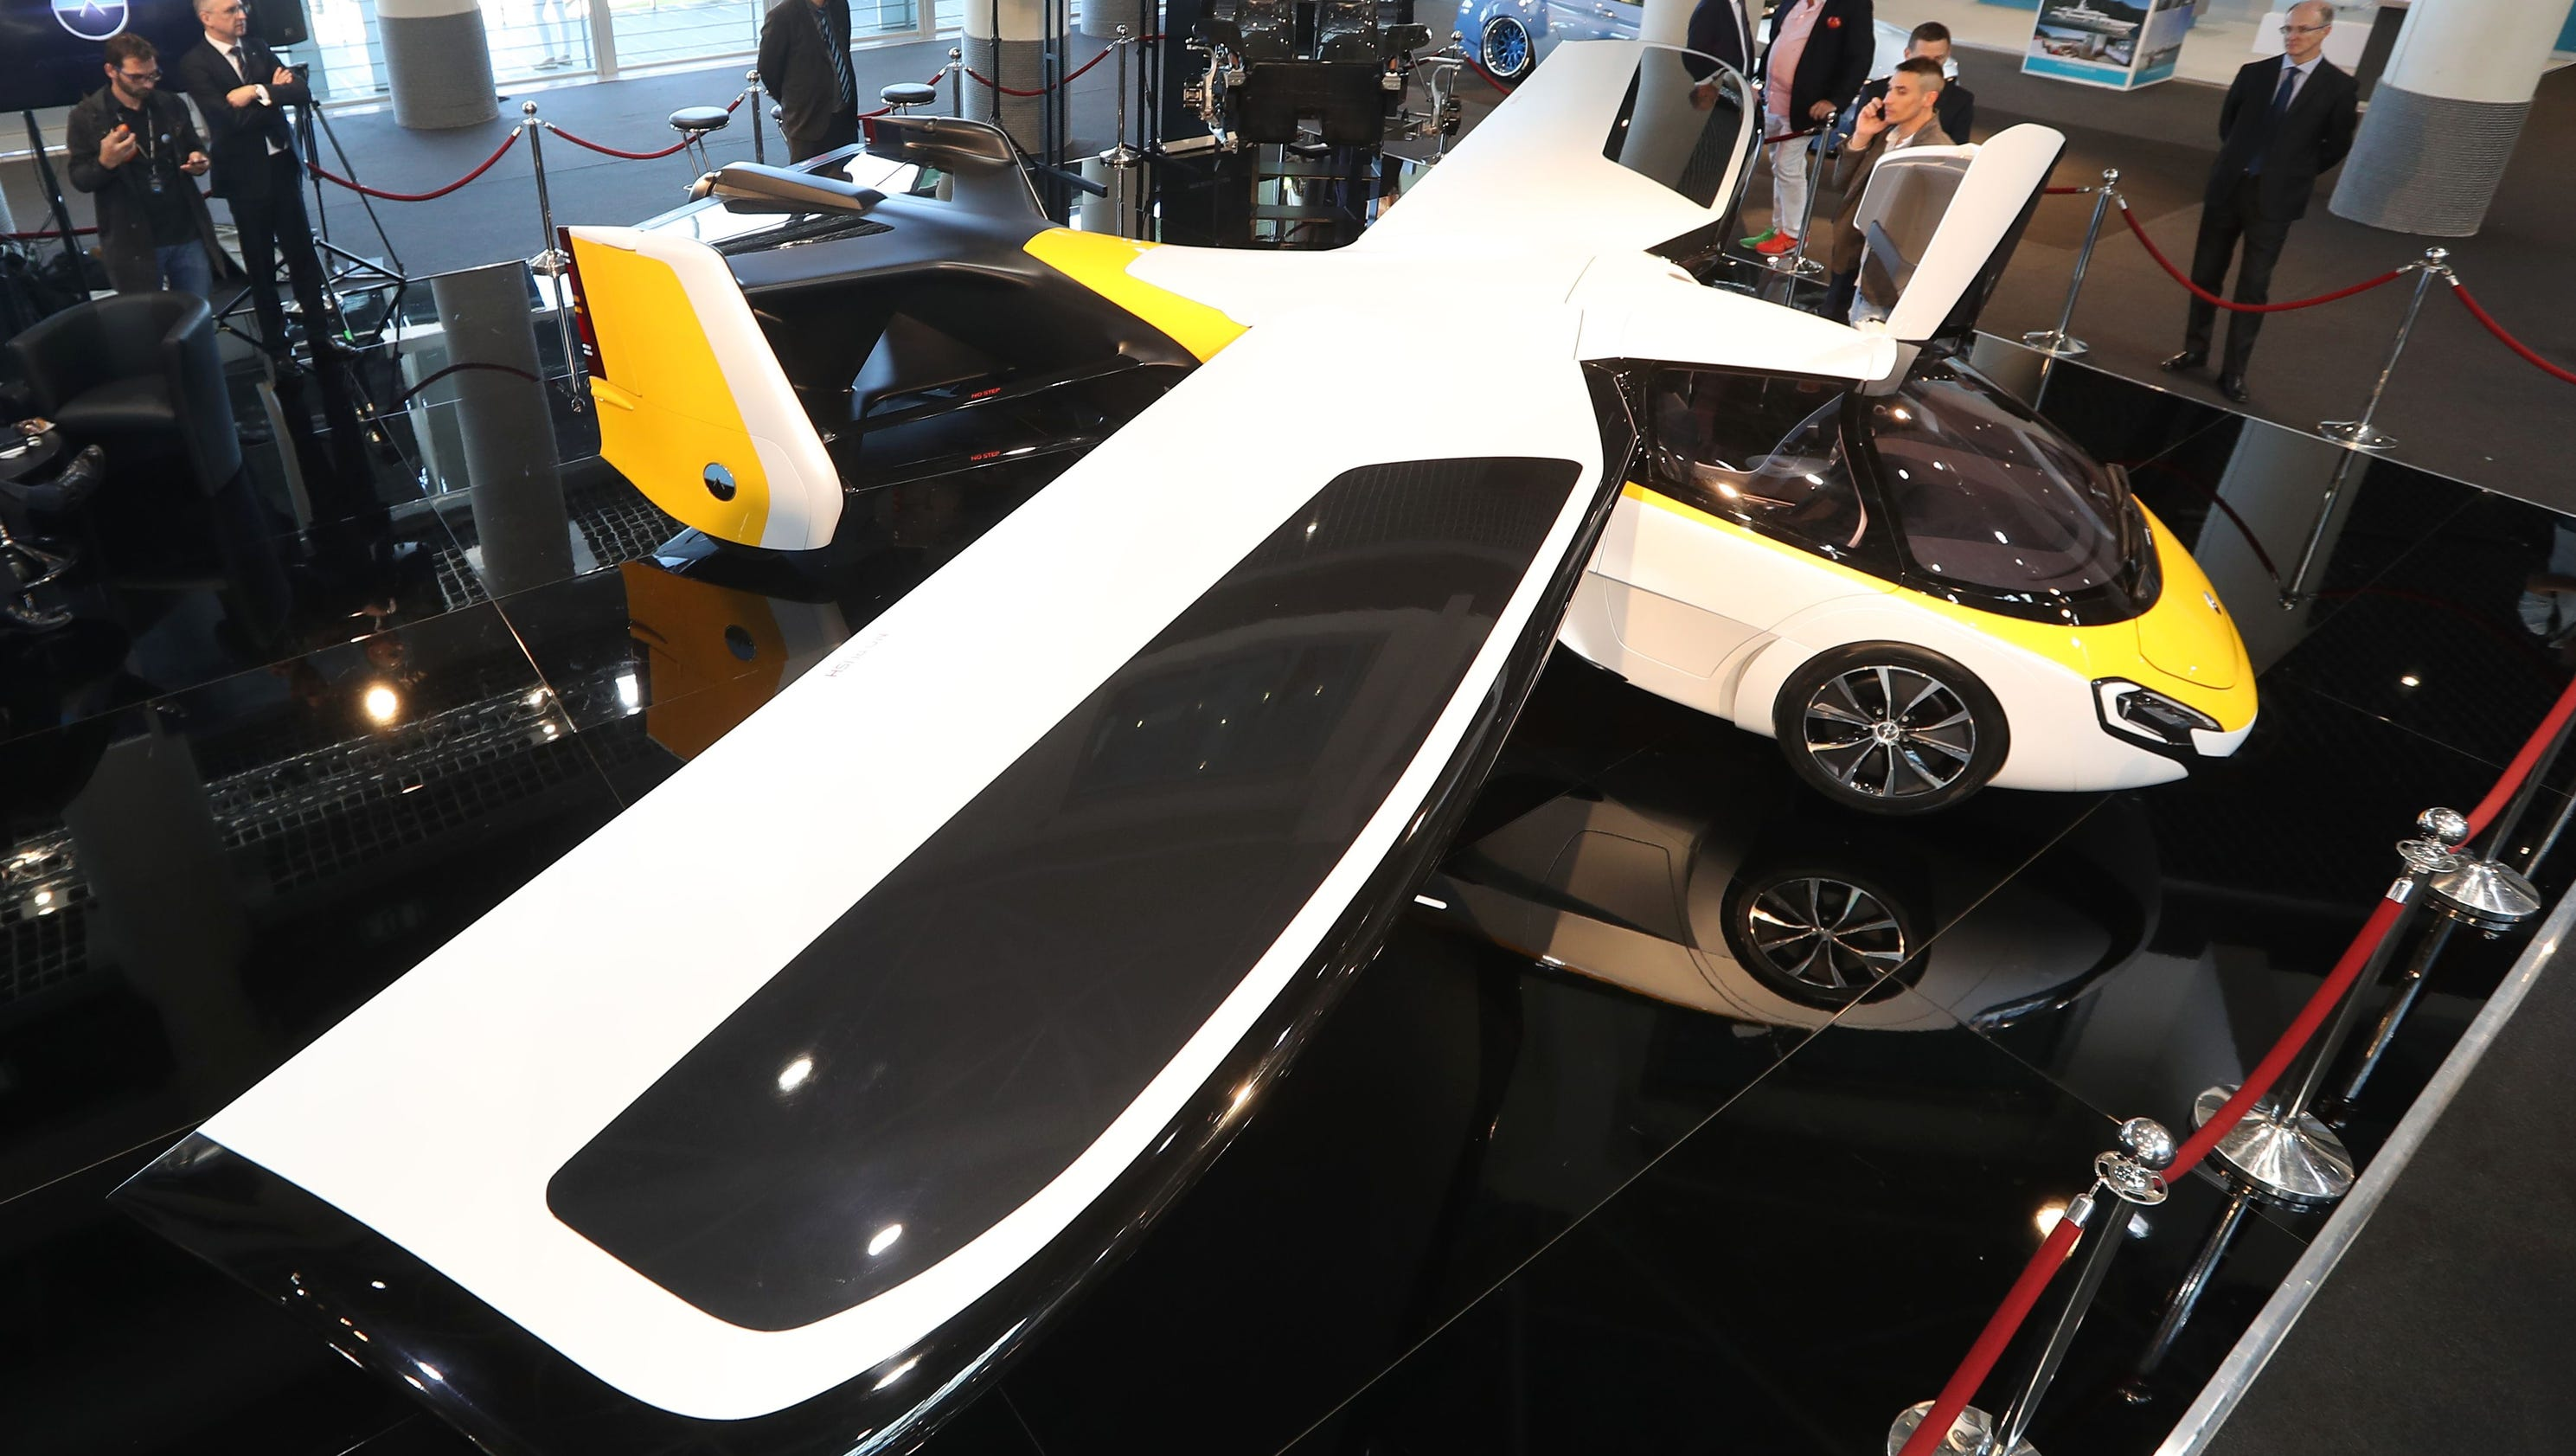 A look at flying cars and driving airplanes rssfeeds usatoday com 2017 04 21